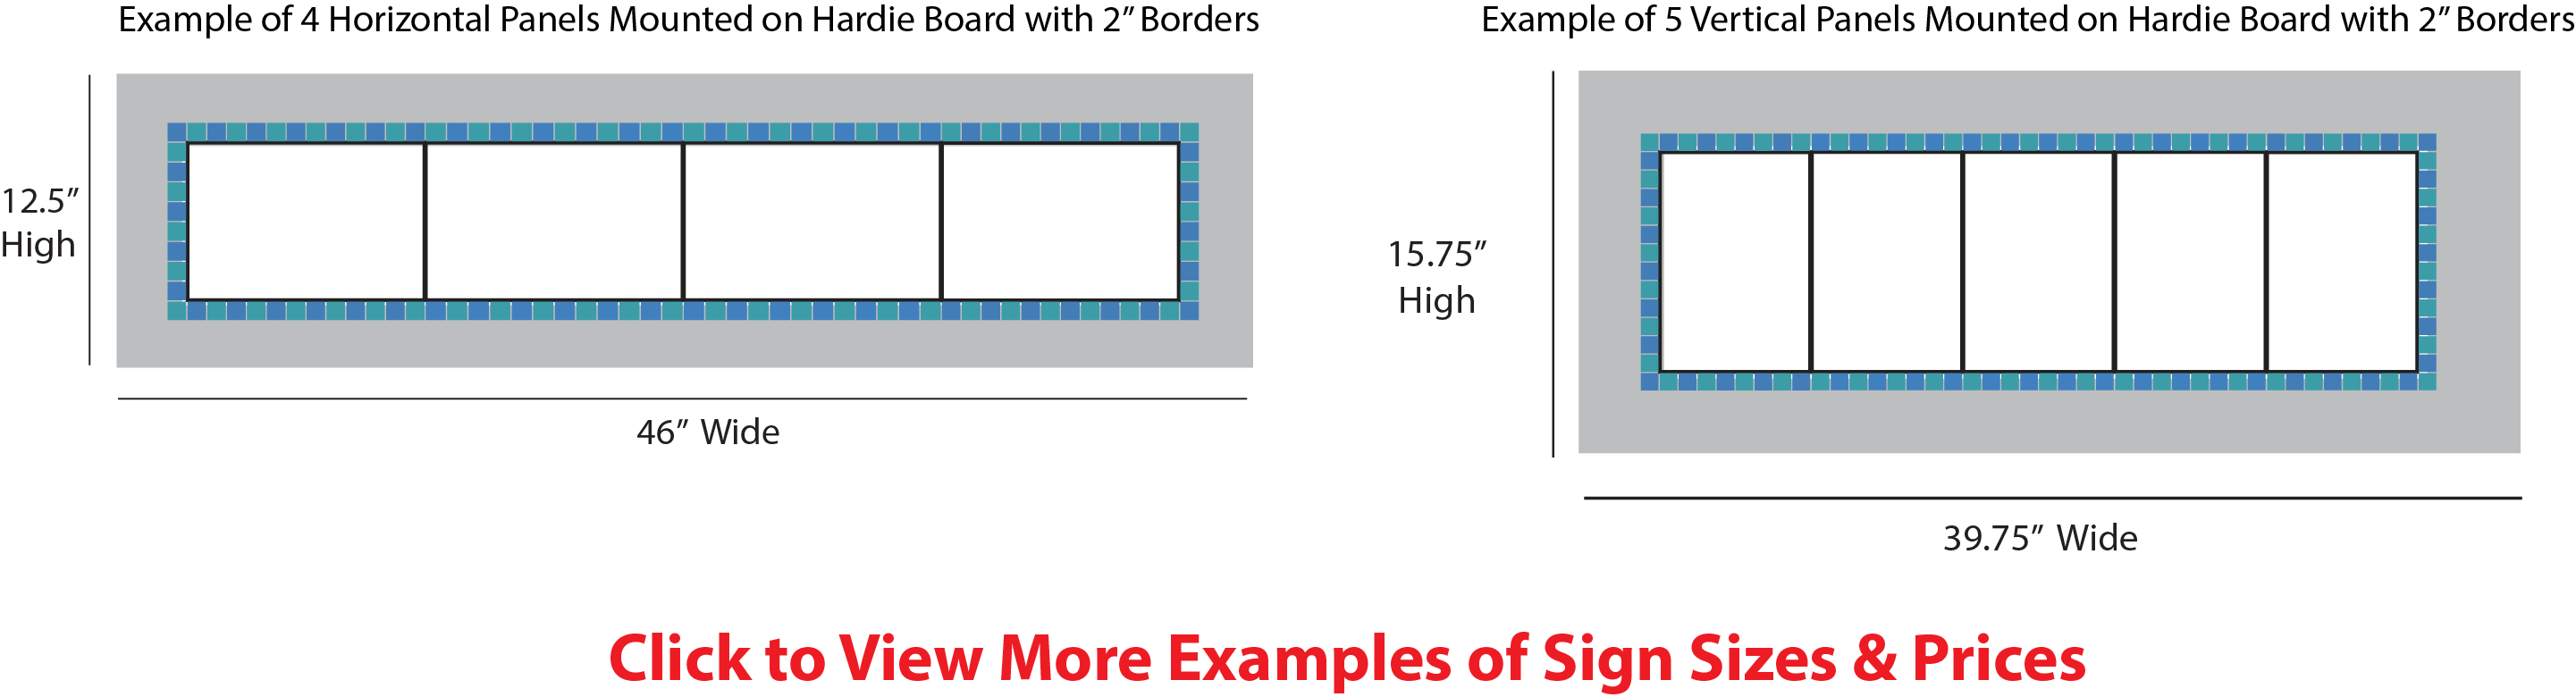 Sign Sizes & Prices